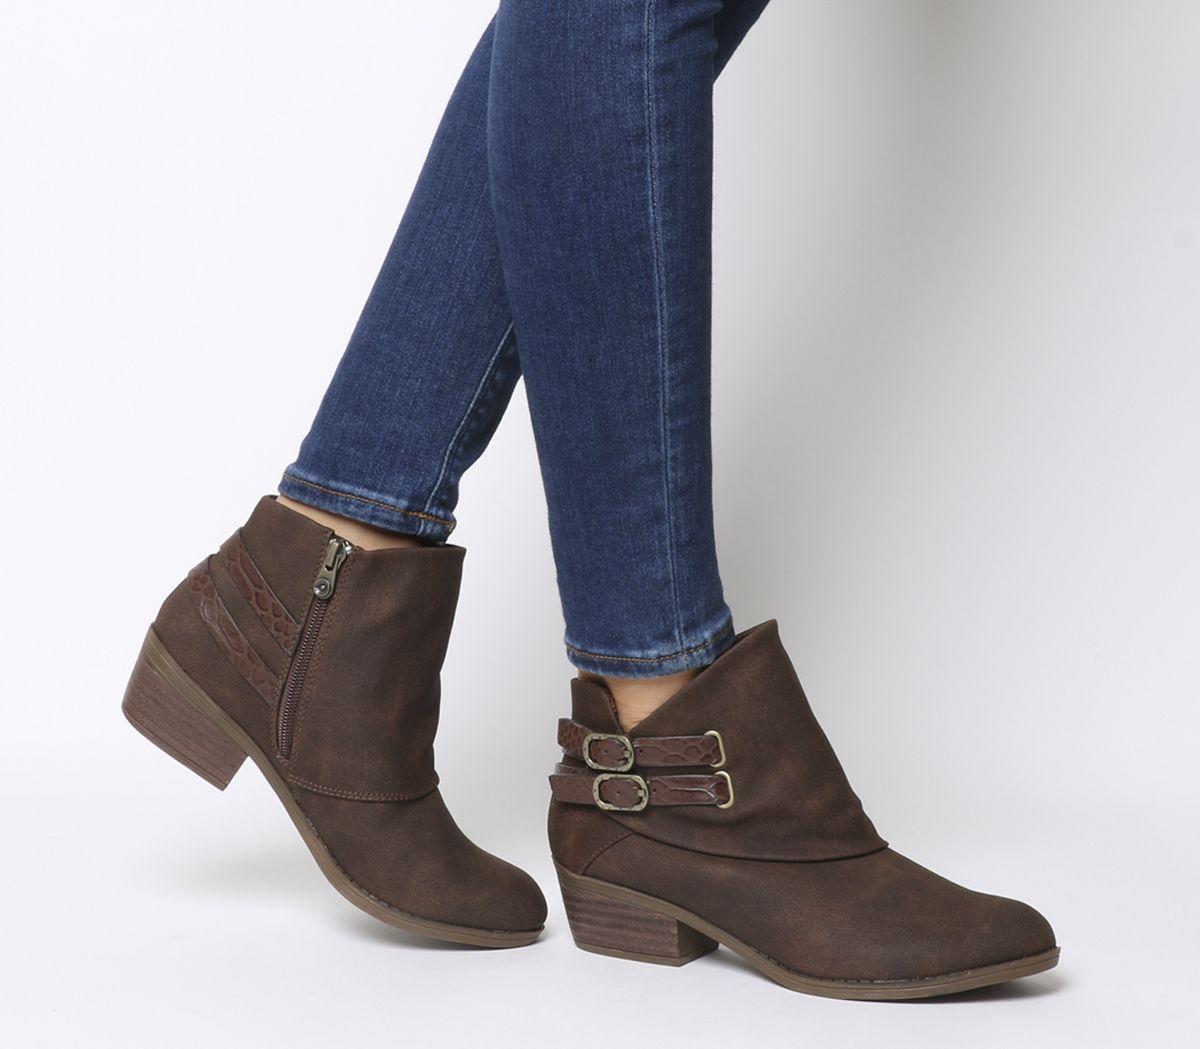 6166ddf256ebf Blowfish Sistee Double Buckle Ankle Boots Tobacco Rustic - Womens Boots